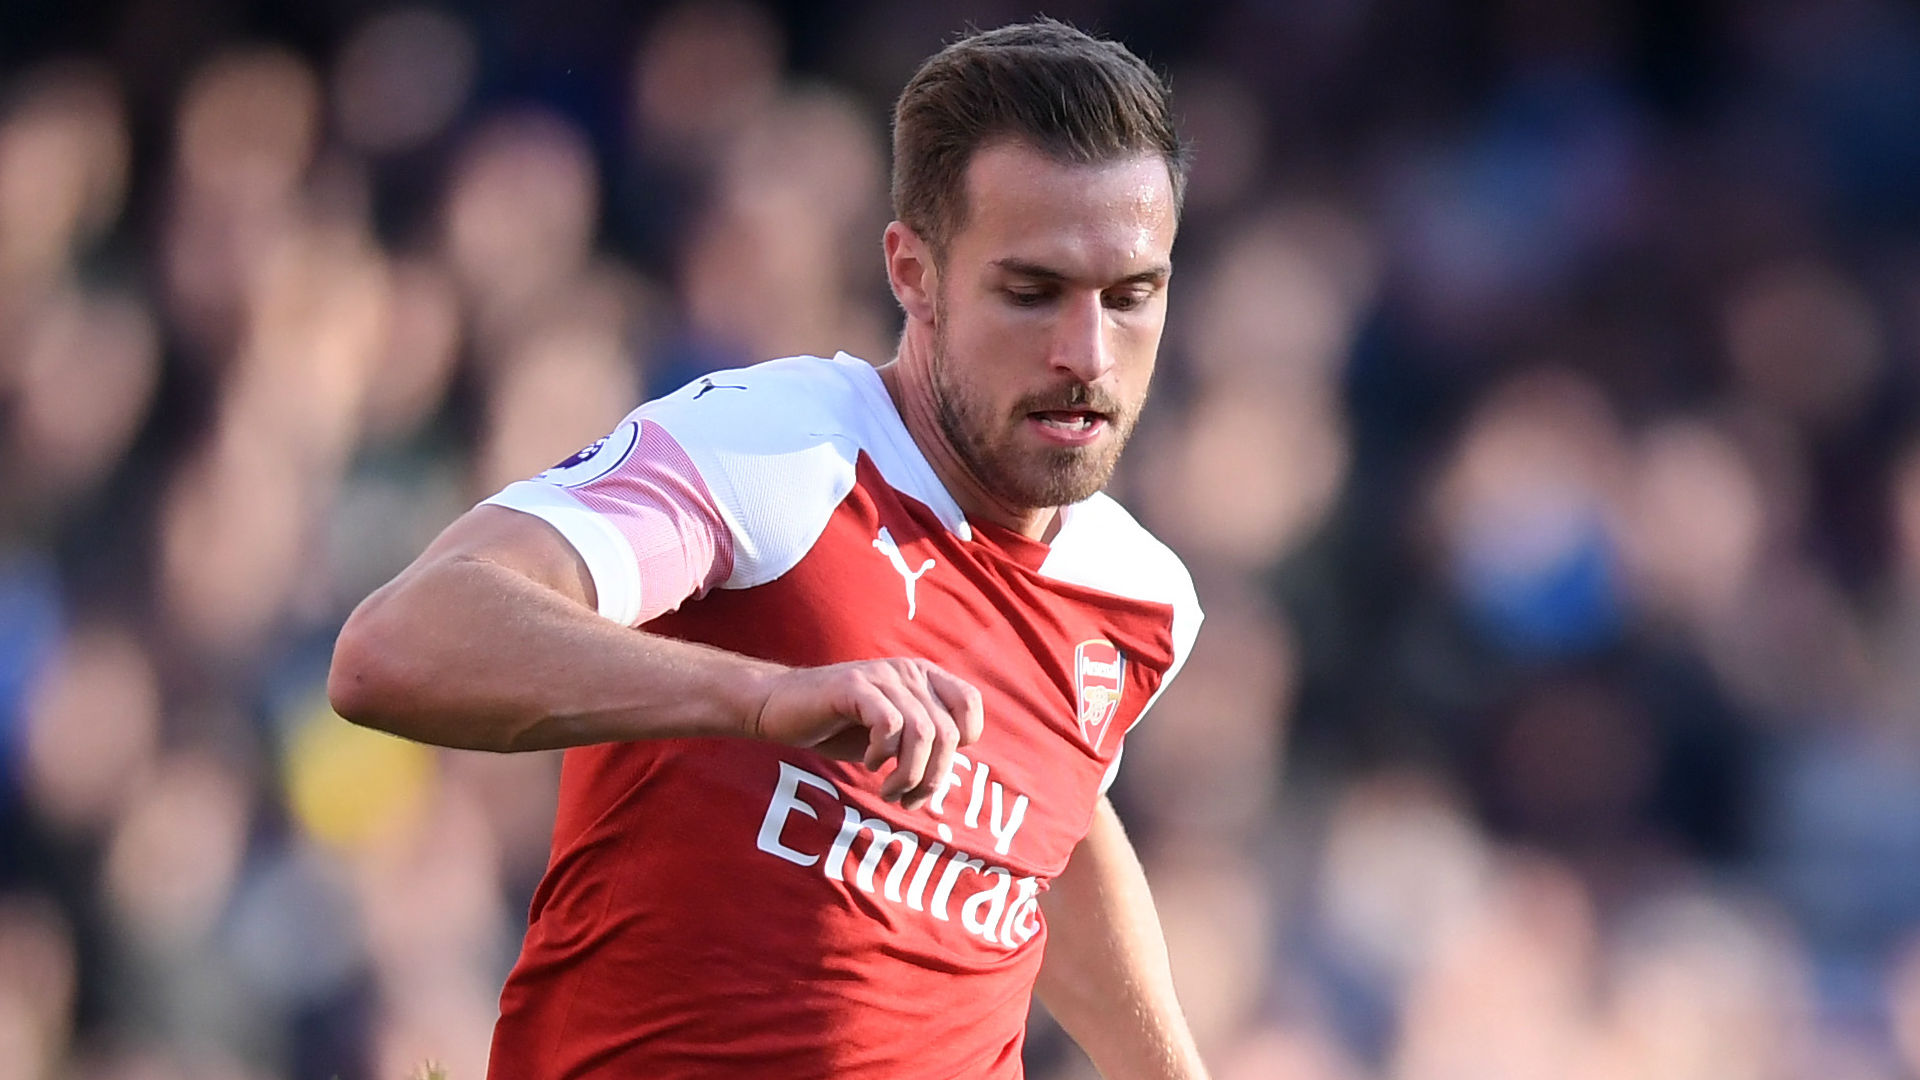 Aaron Ramsey: Ian Wright backs Arsenal contract 'stance' on Wales misfielder